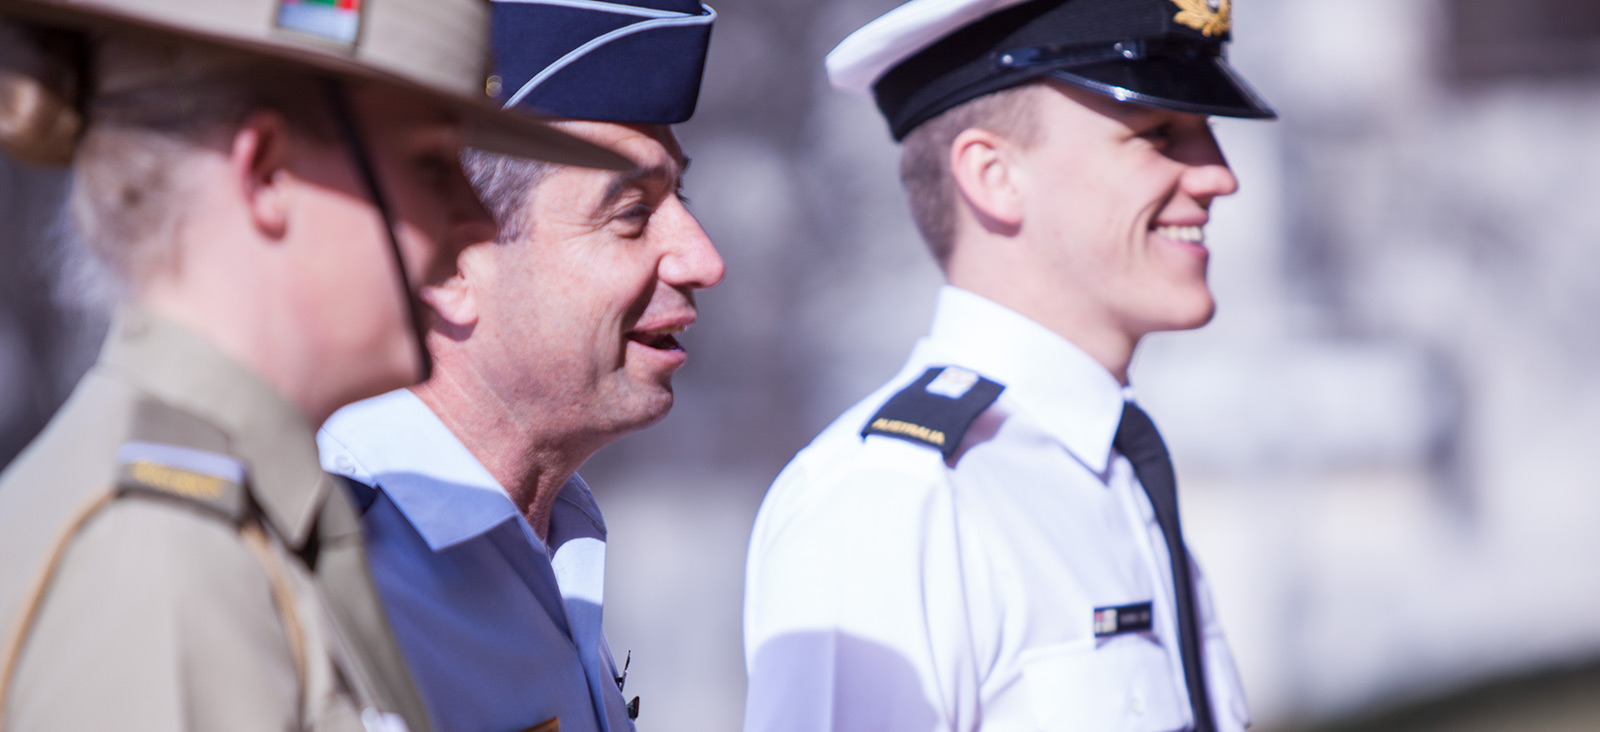 Defence Jobs Australia - Your Commitment